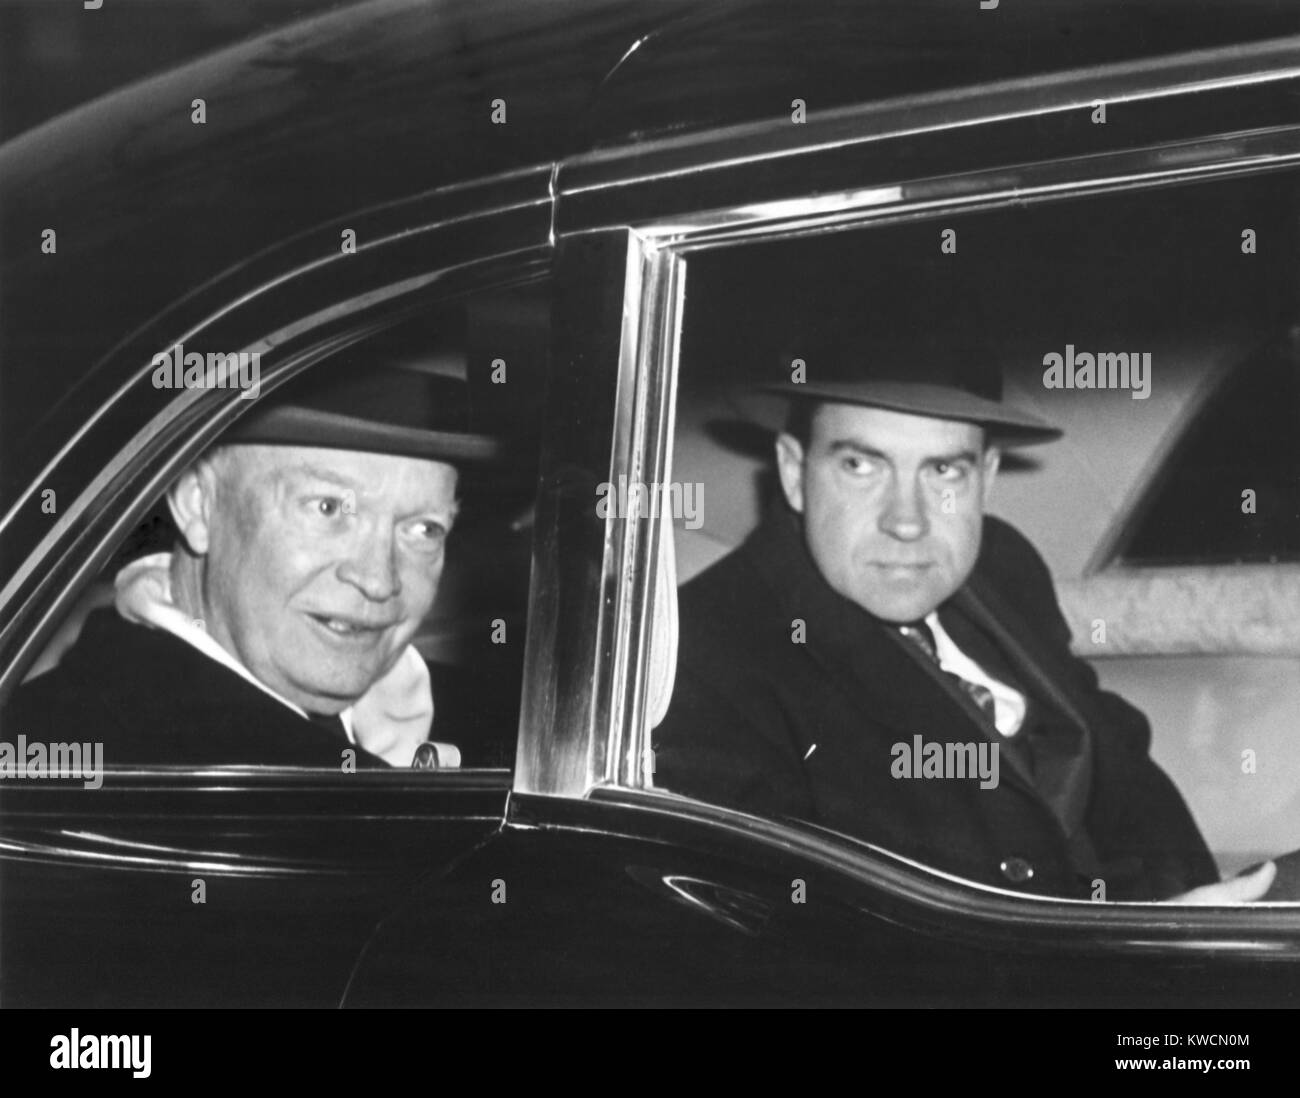 President Eisenhower and Vice President Richard Nixon in a limousine. Jan. 7, 1958. - (BSLOC_2014_14_42) - Stock Image